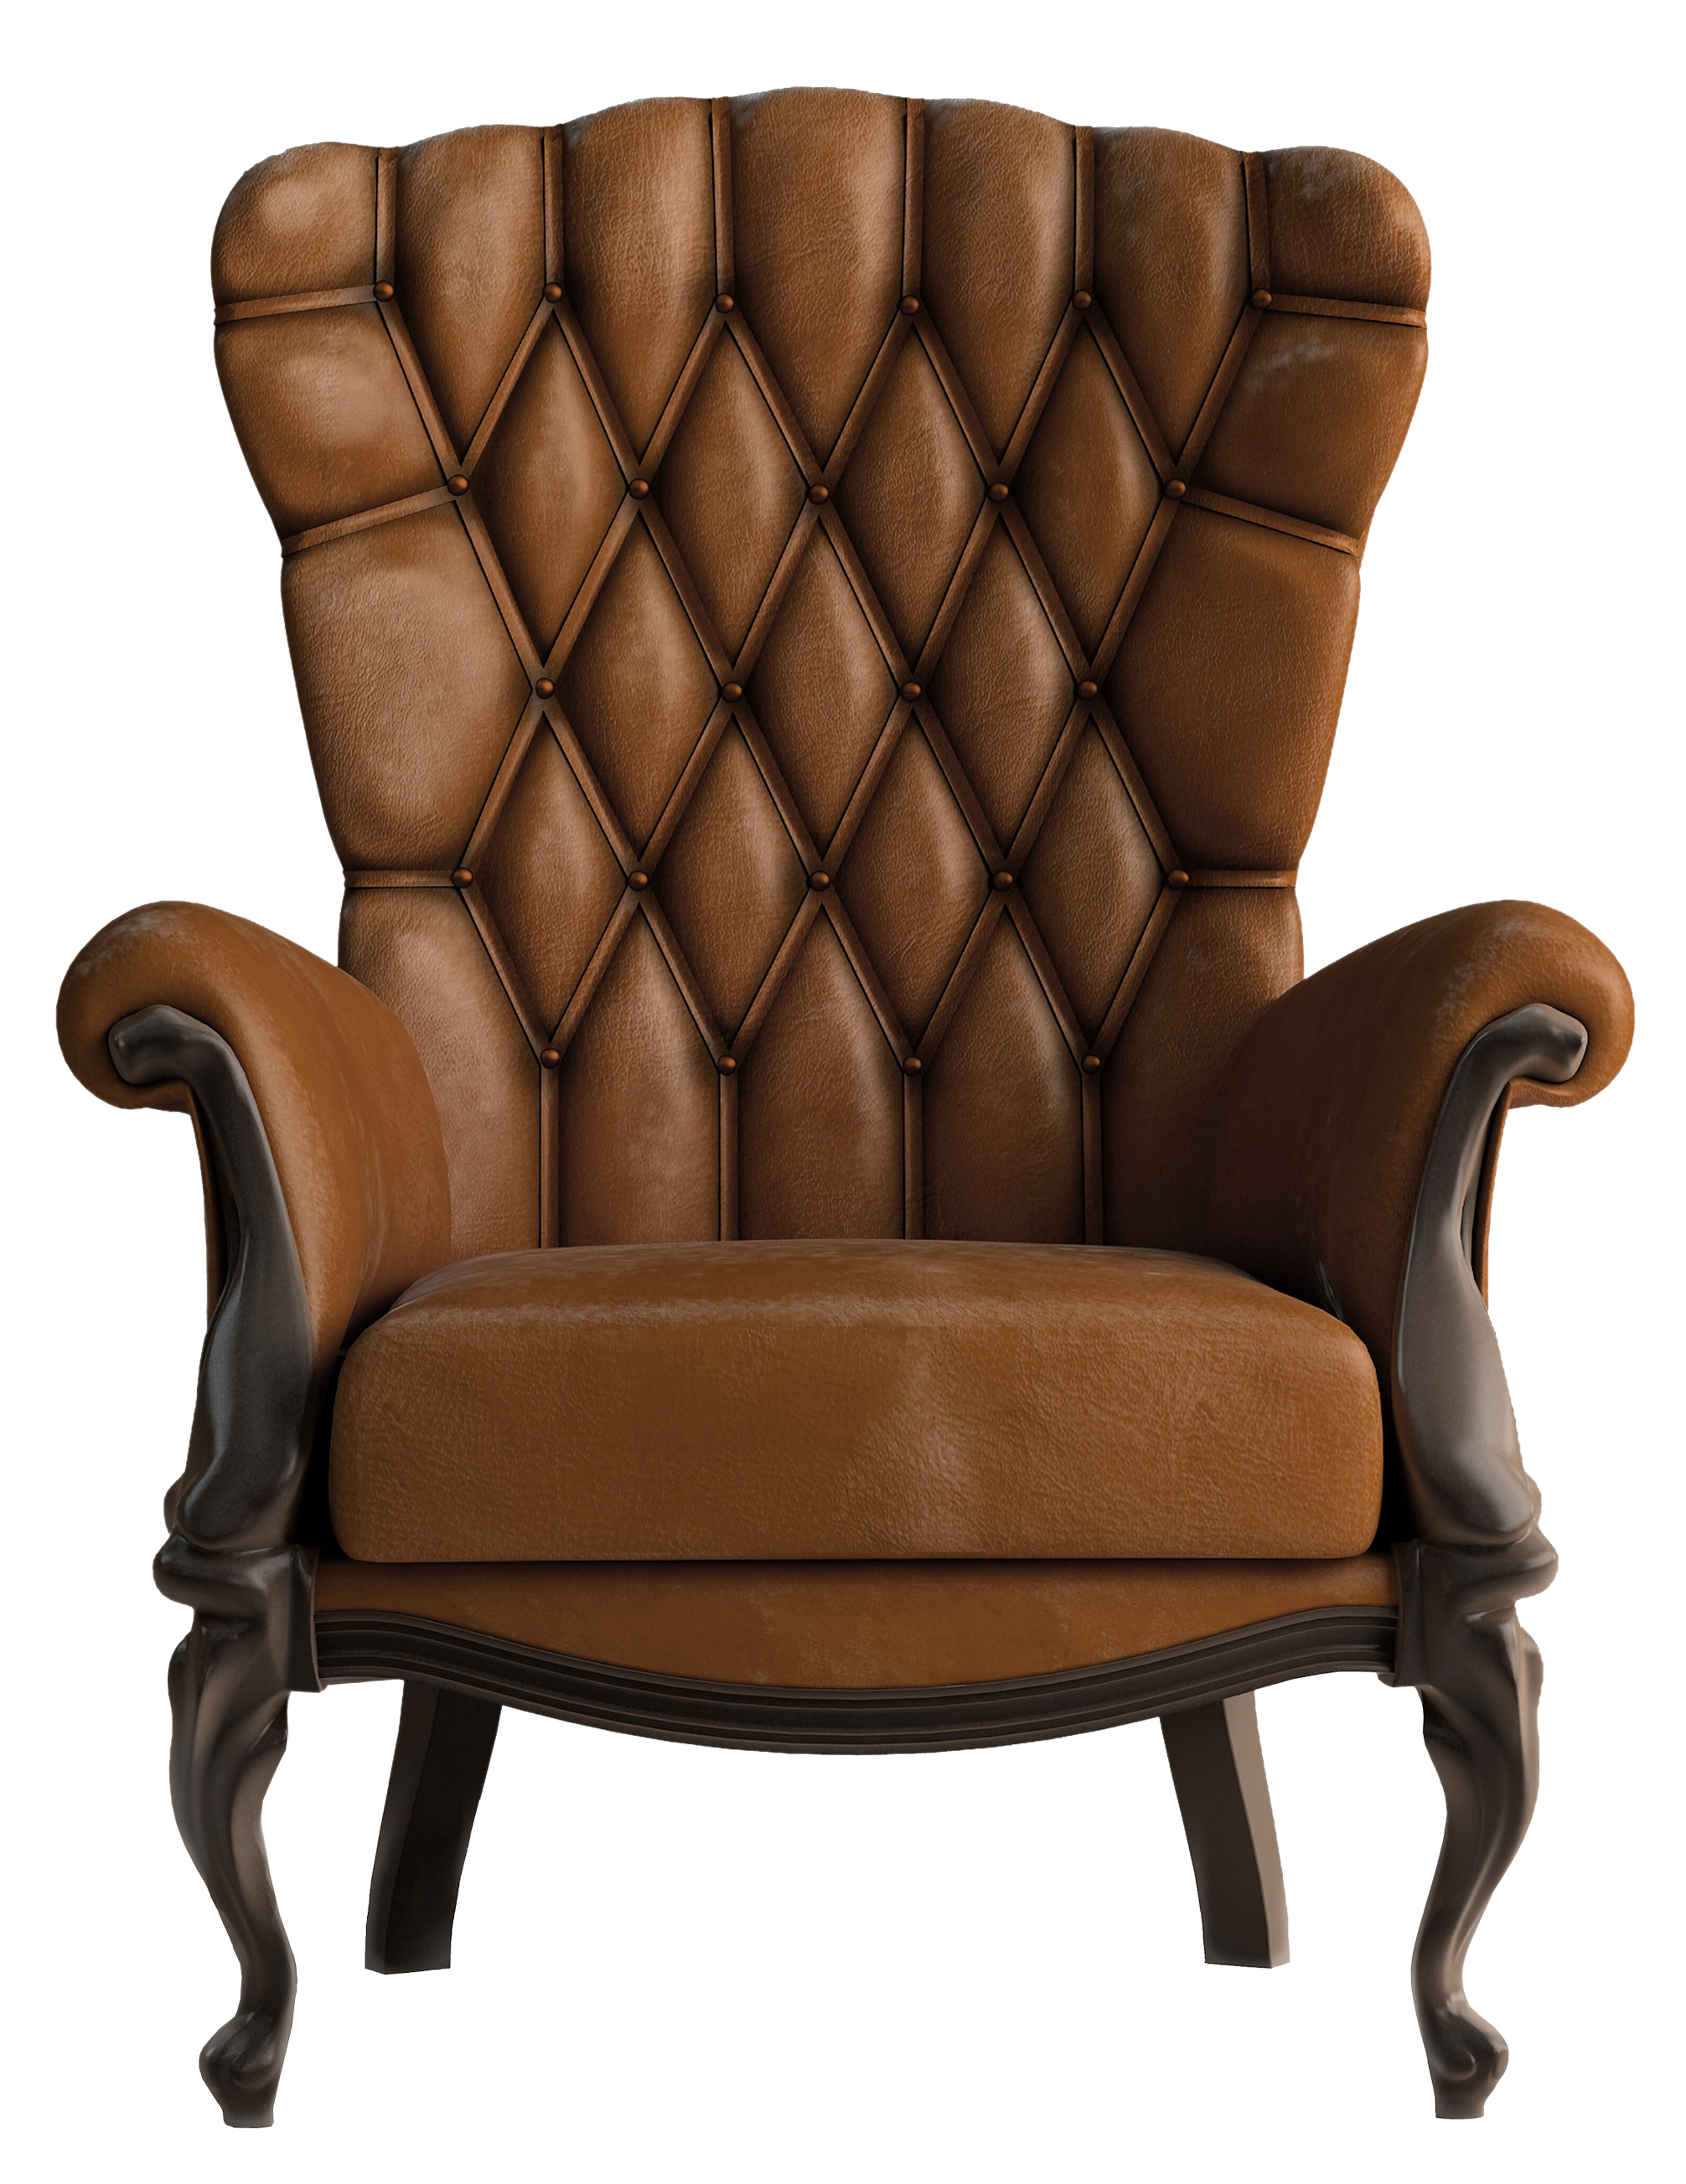 Chair High-Quality Png PNG Image